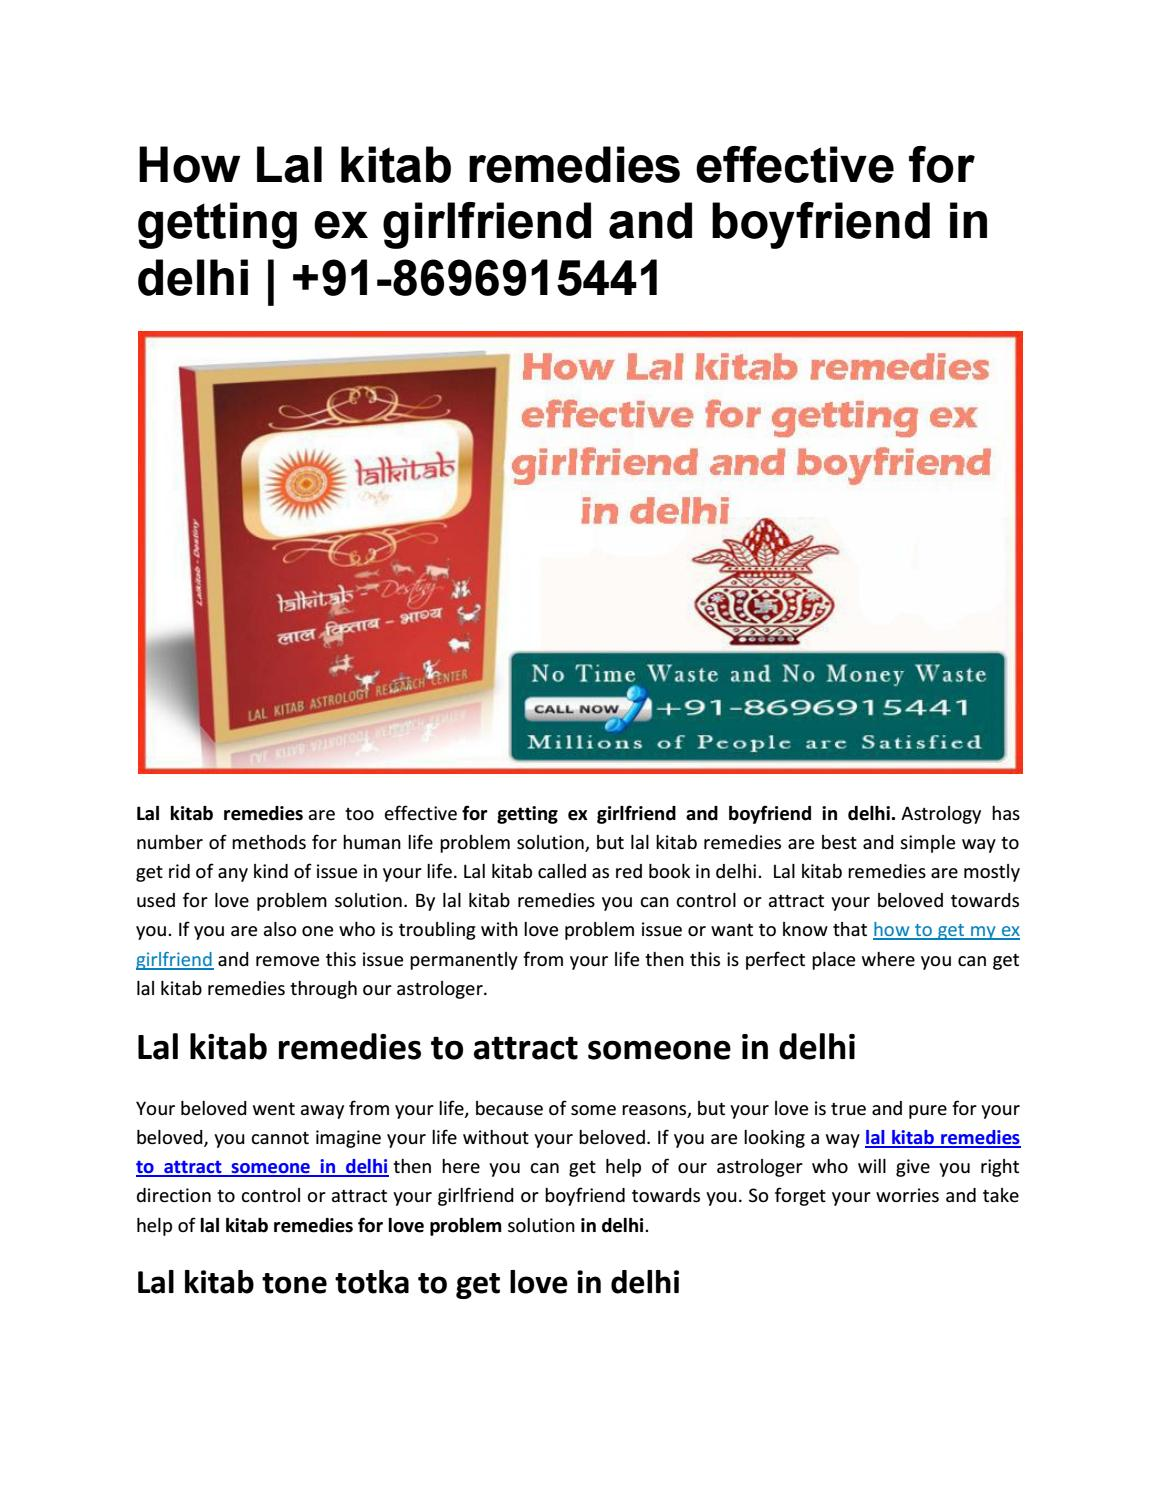 How Lal kitab remedies effective for getting ex girlfriend and